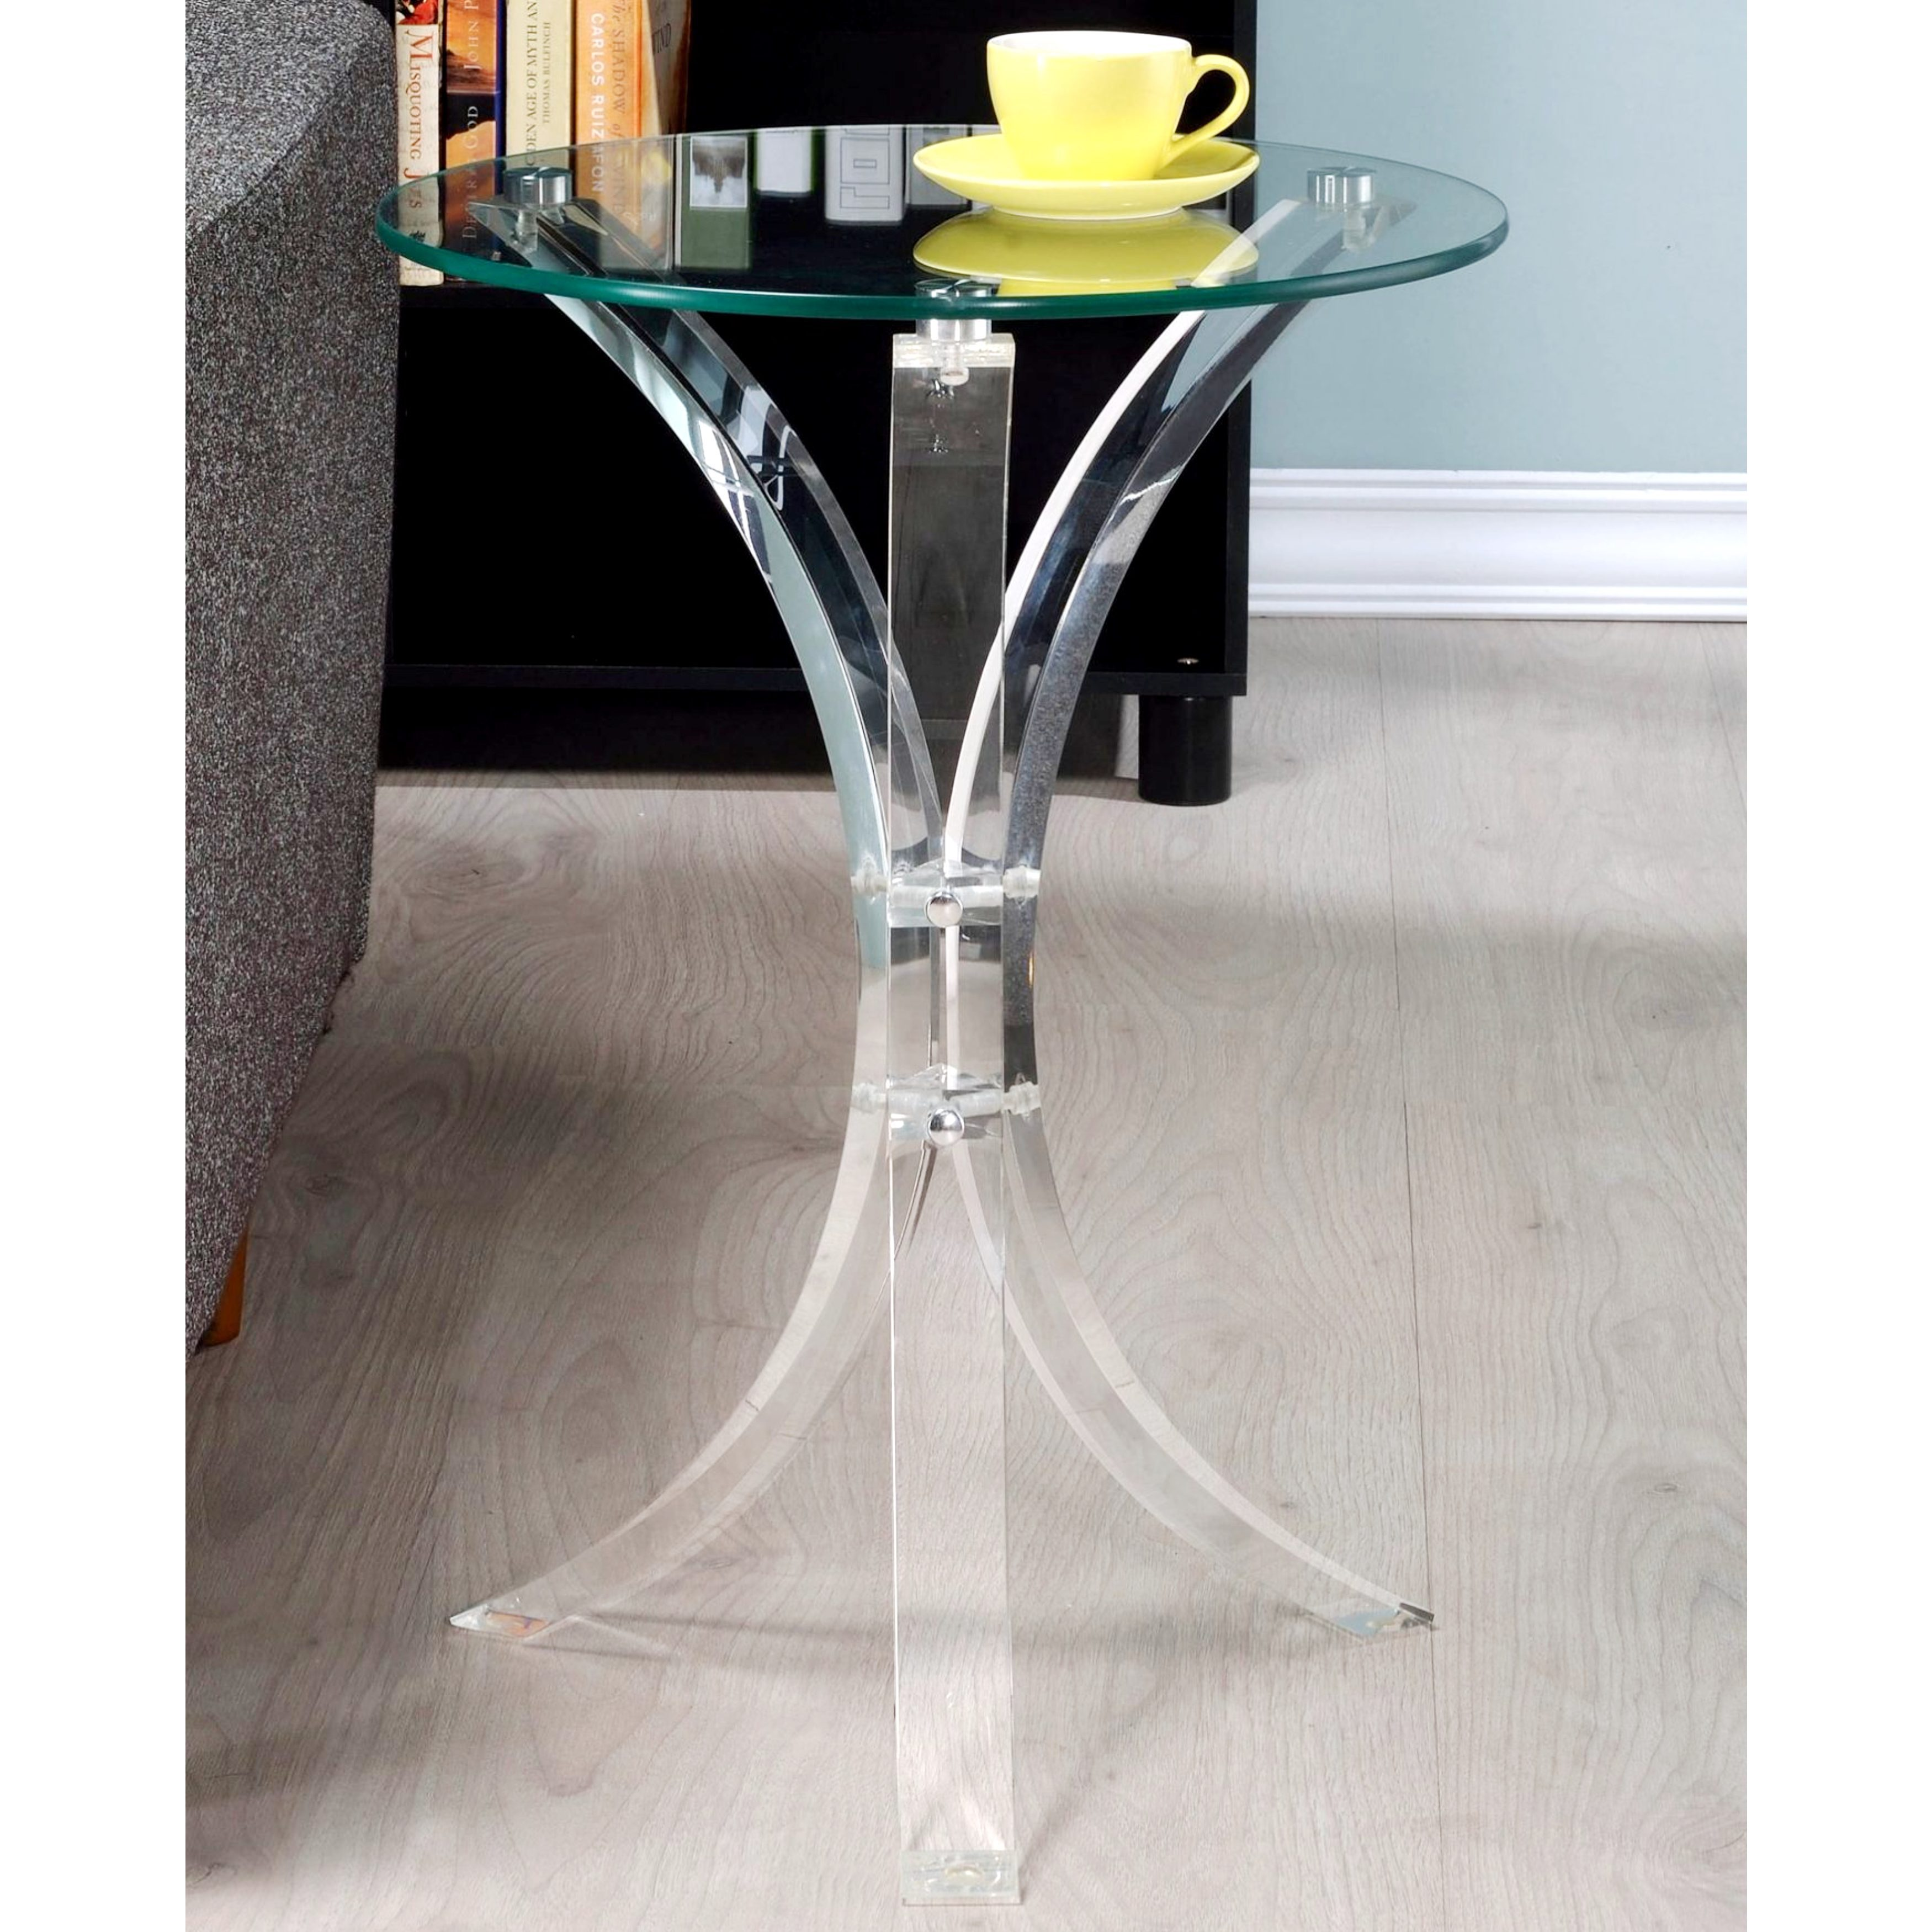 silver orchid berangere modern design curved base accent table with glass top free shipping today lamps for bedroom pier floor country tablecloths diy counter height console end